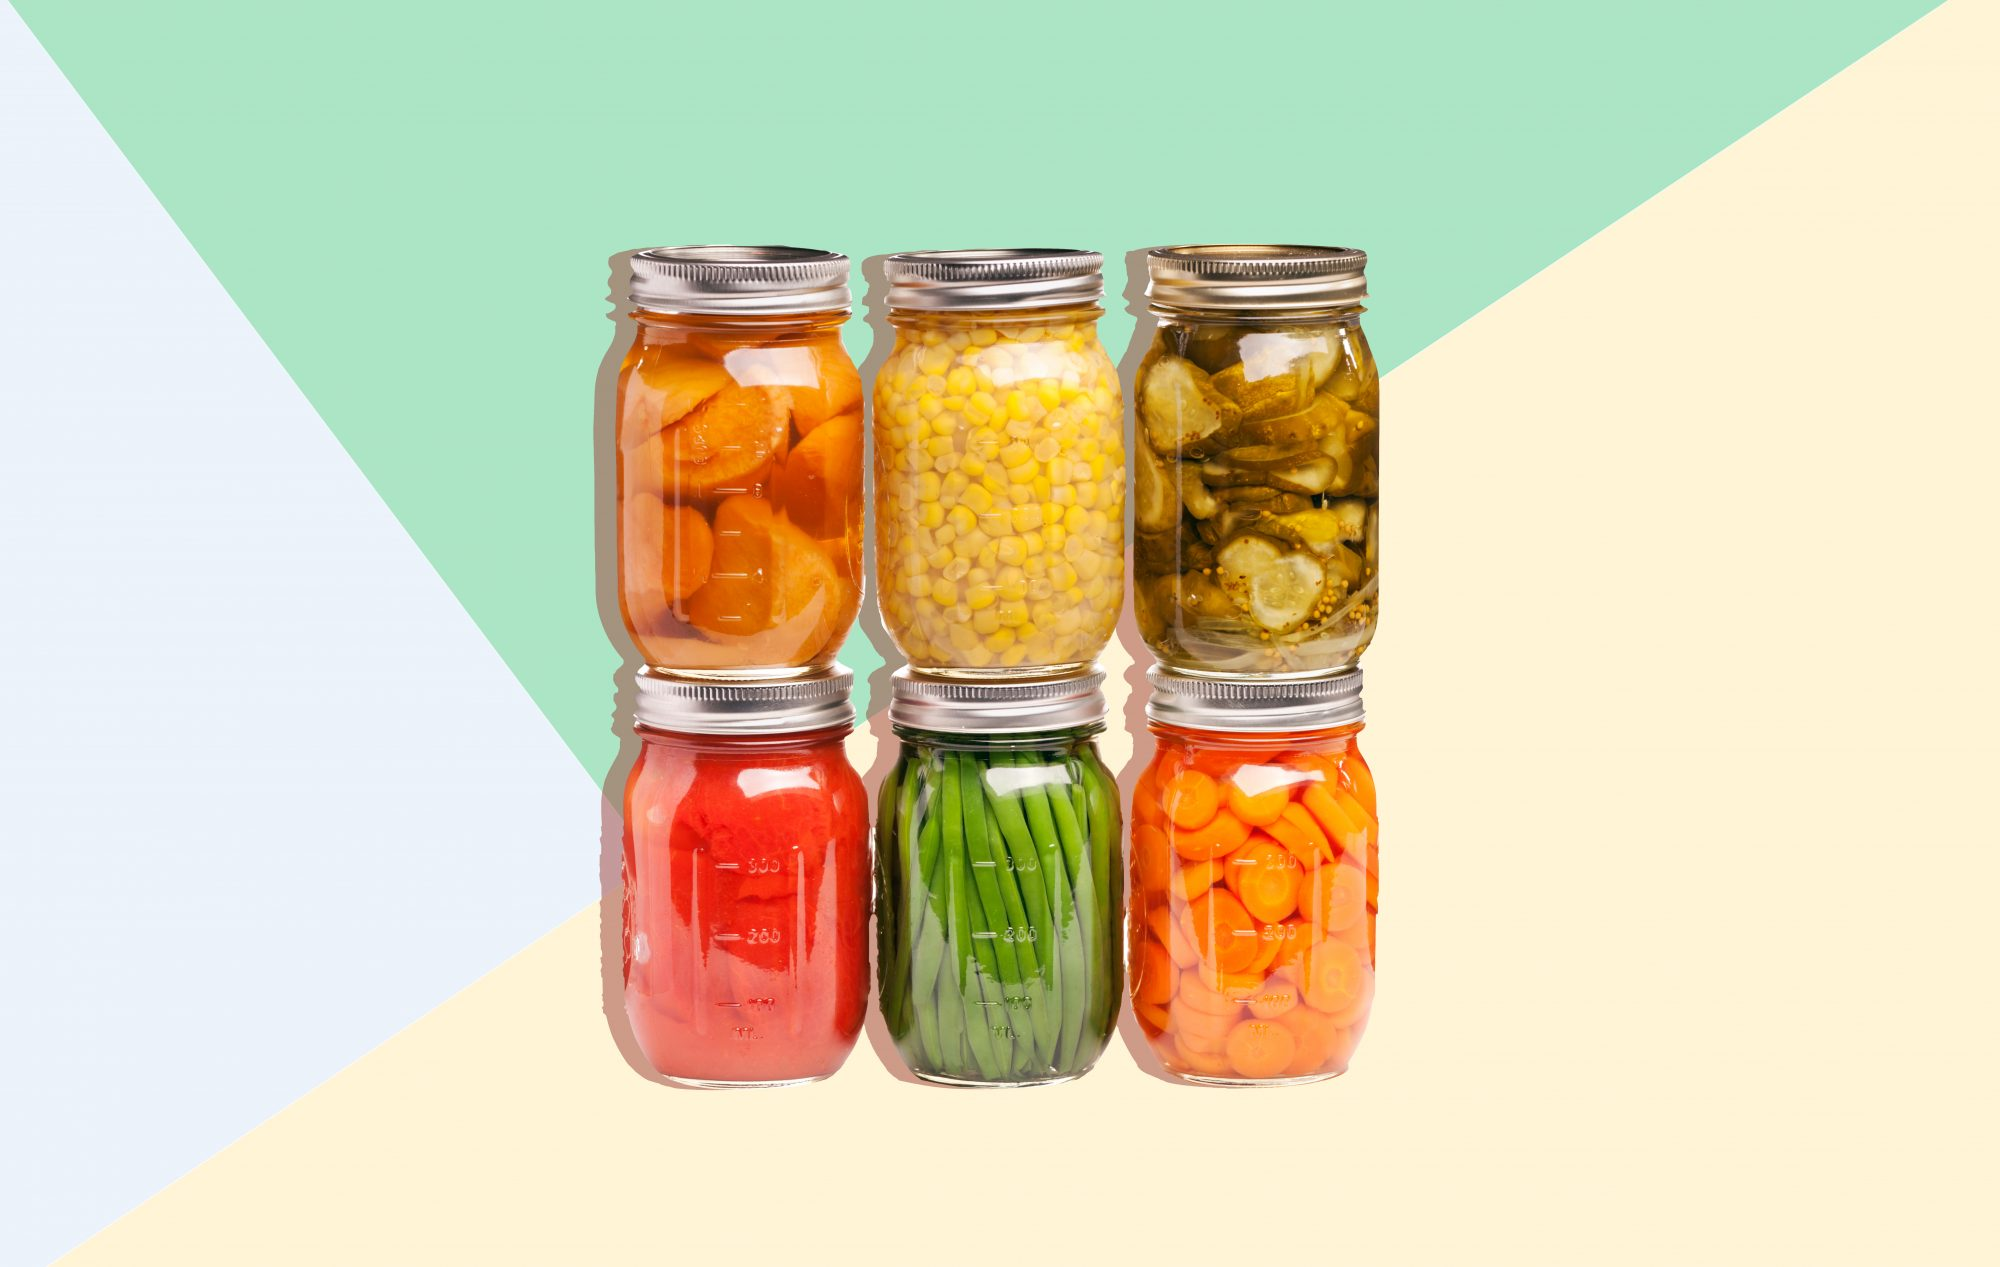 canning 101: Everything You Need to Know About Canning and Preserving Food